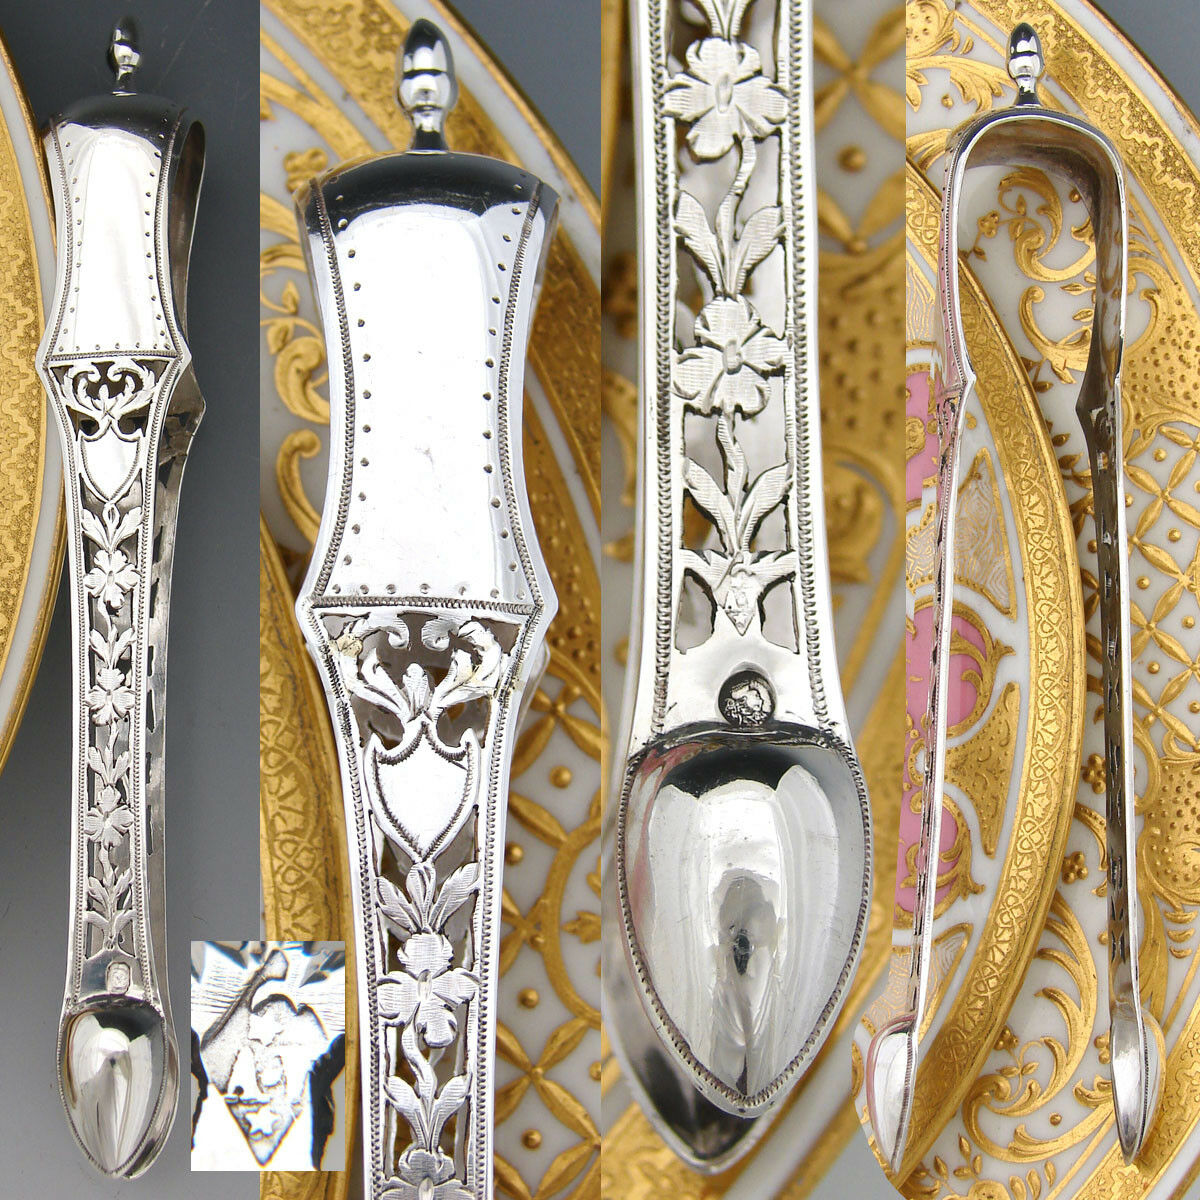 Antique French Sterling Silver Sugar Tongs, Pierced Flowers & Foliage, 1819-1838